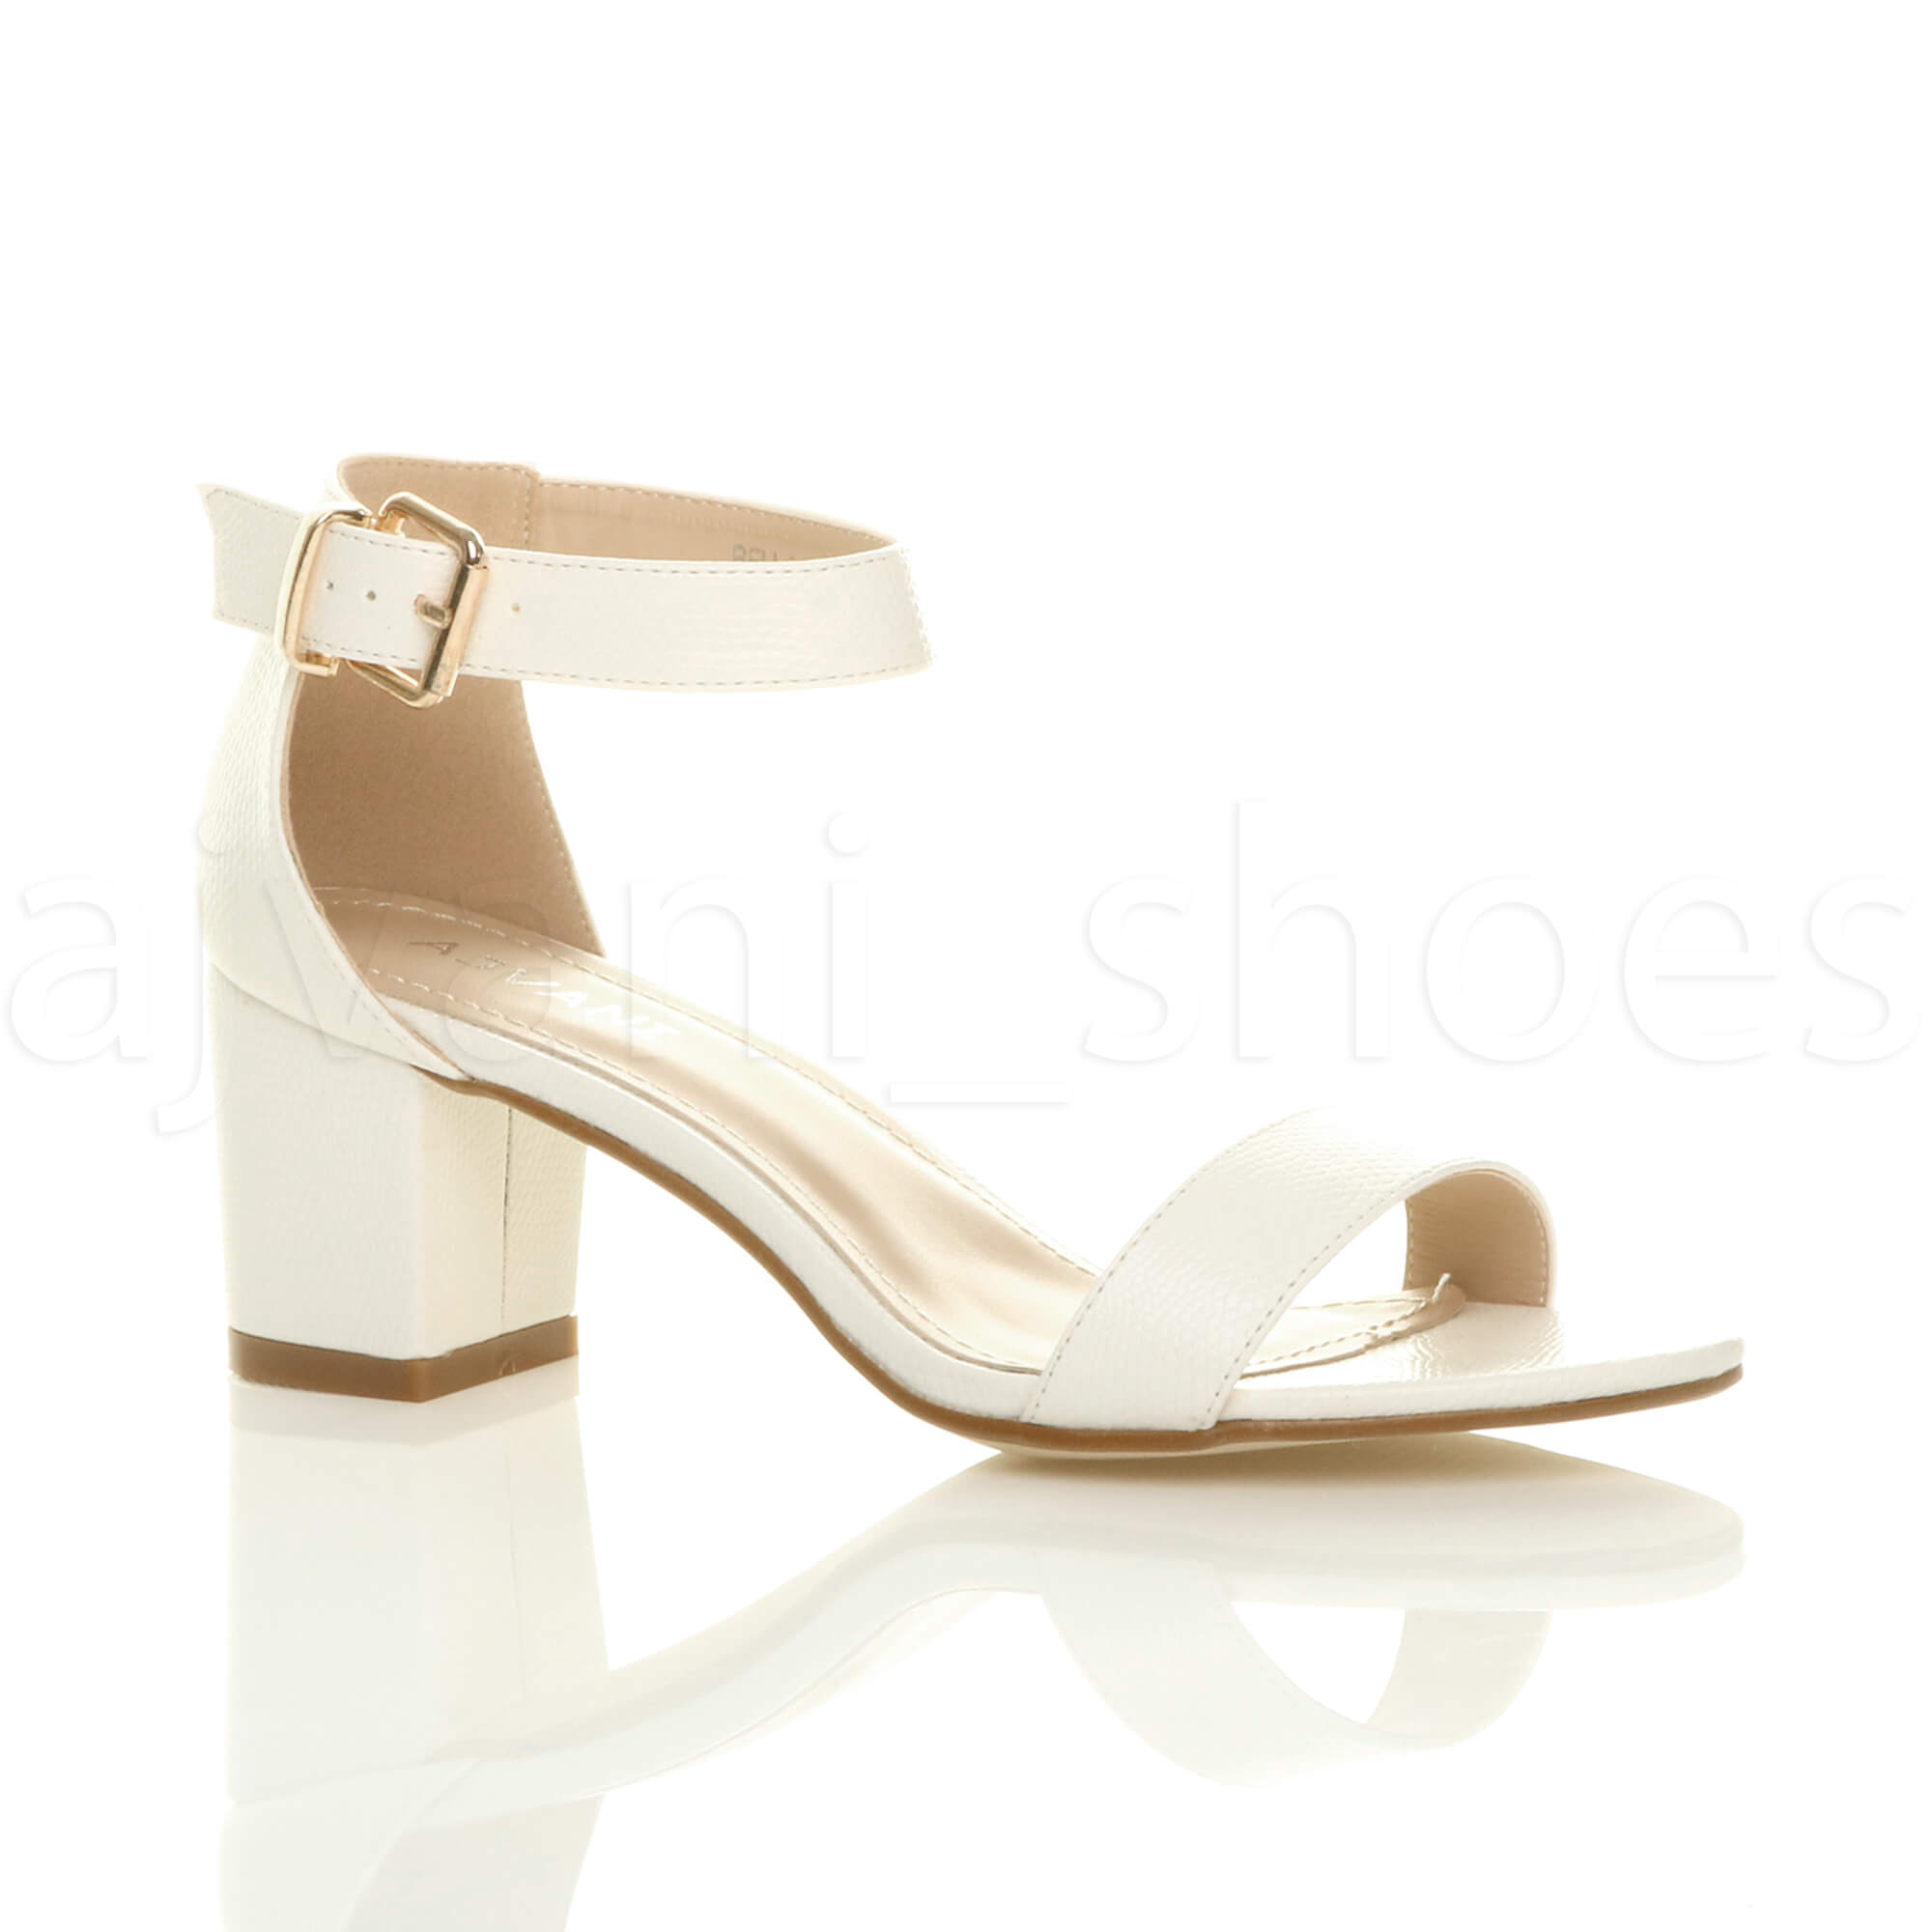 WOMENS-LADIES-LOW-MID-BLOCK-HEEL-ANKLE-STRAP-BUCKLE-PARTY-STRAPPY-SANDALS-SIZE